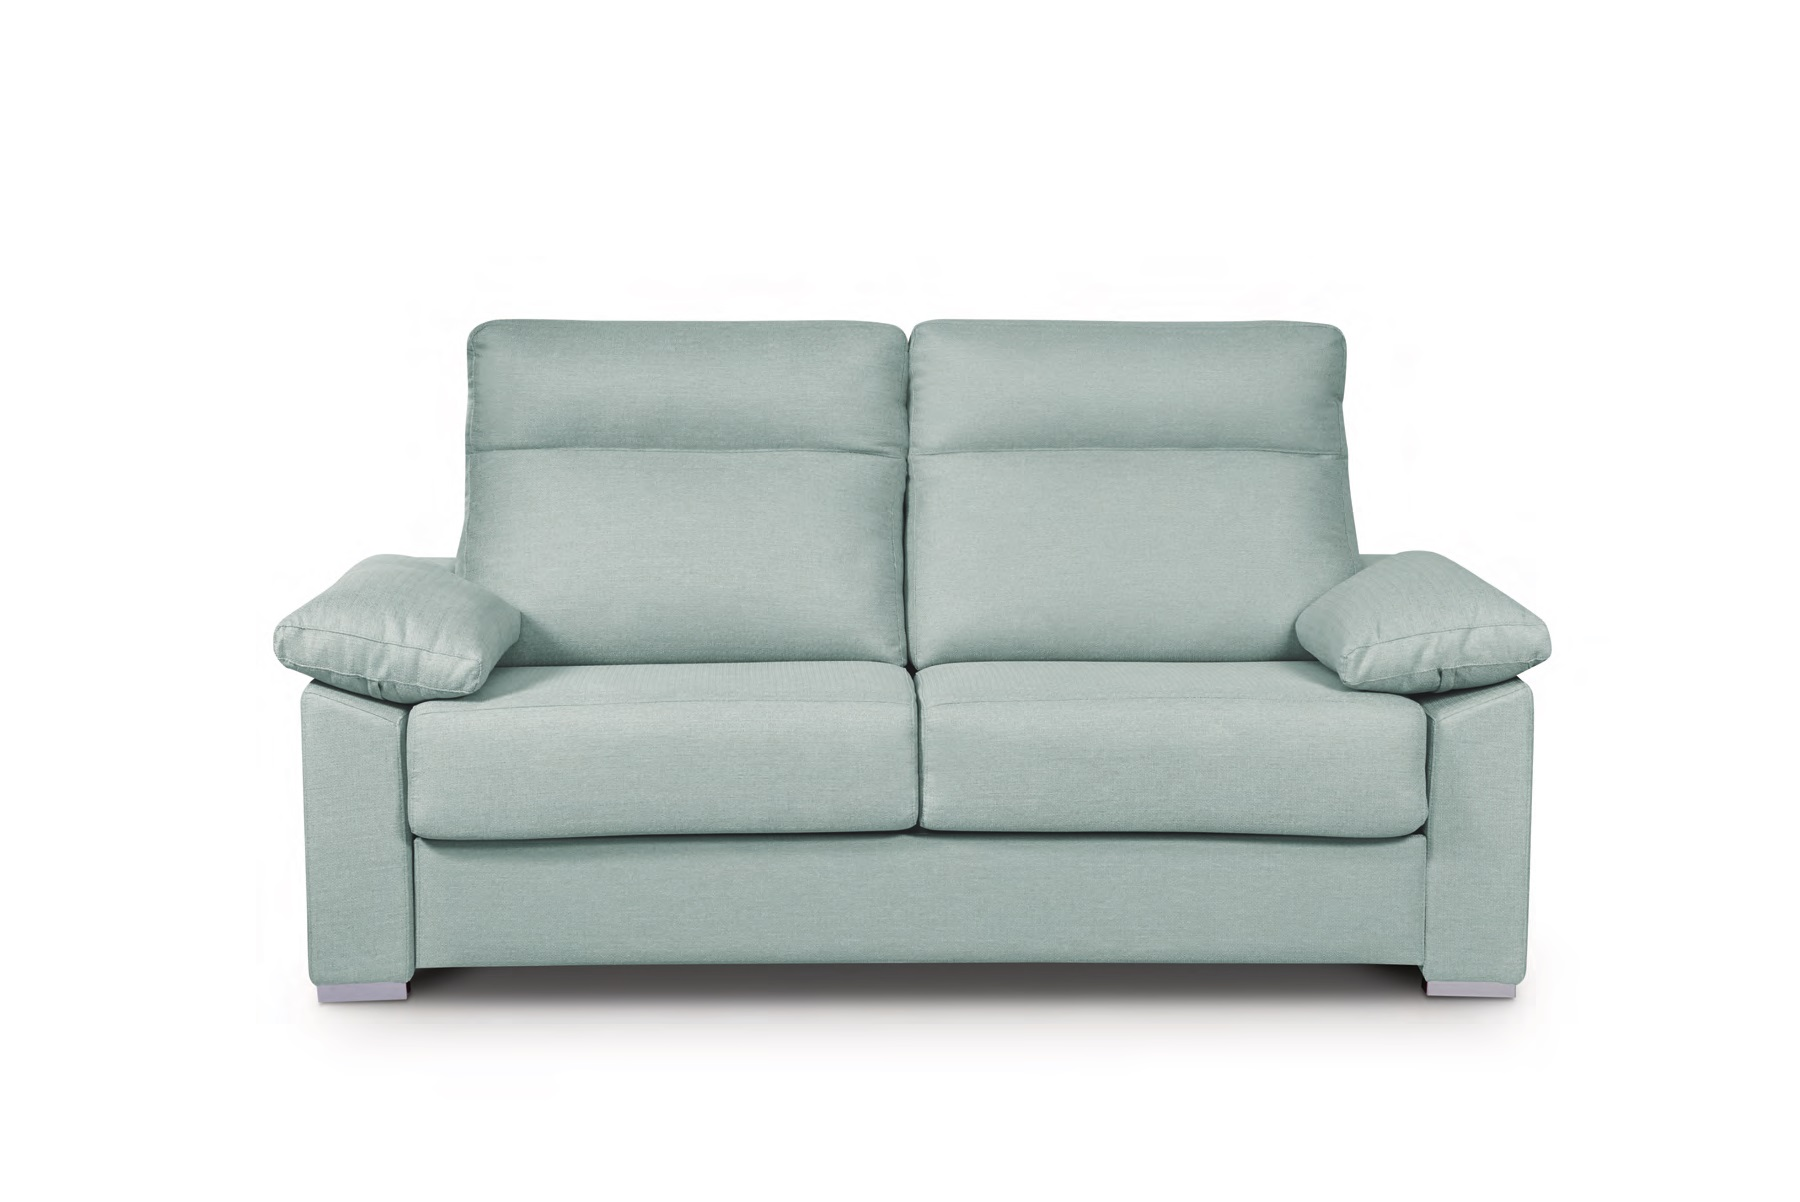 SOFA-CAMA ITALIANO